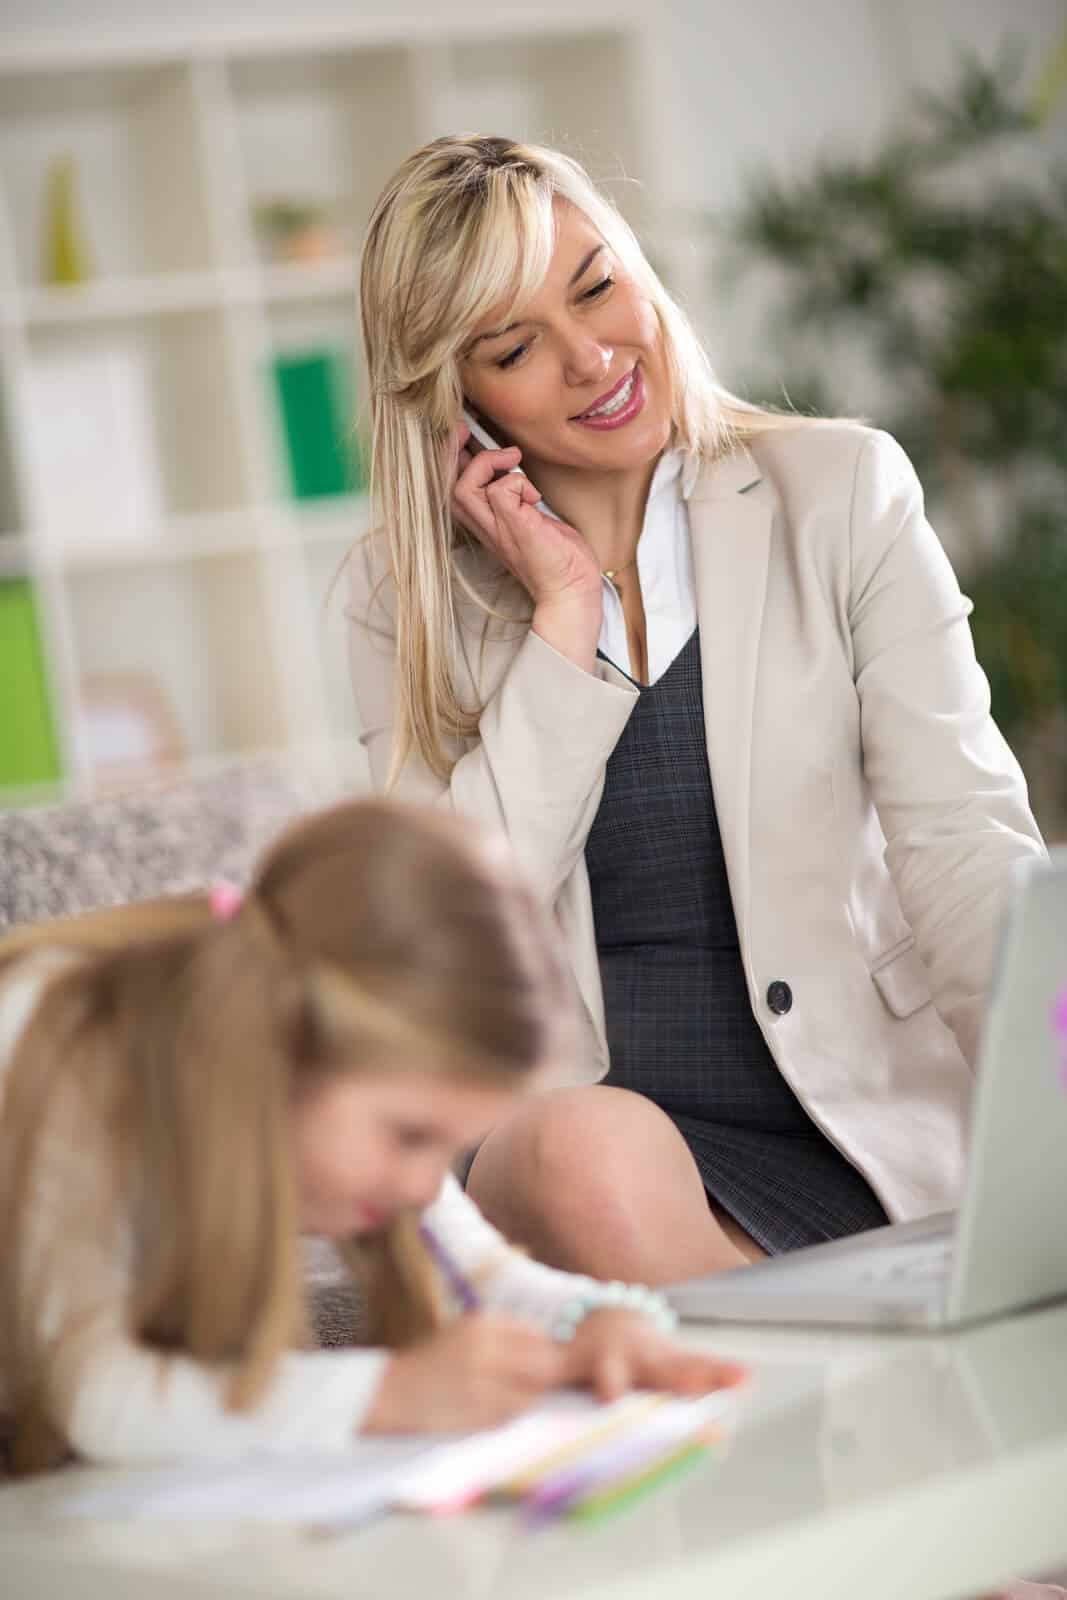 career options and training for stay at home moms legitimate work at home jobs for moms